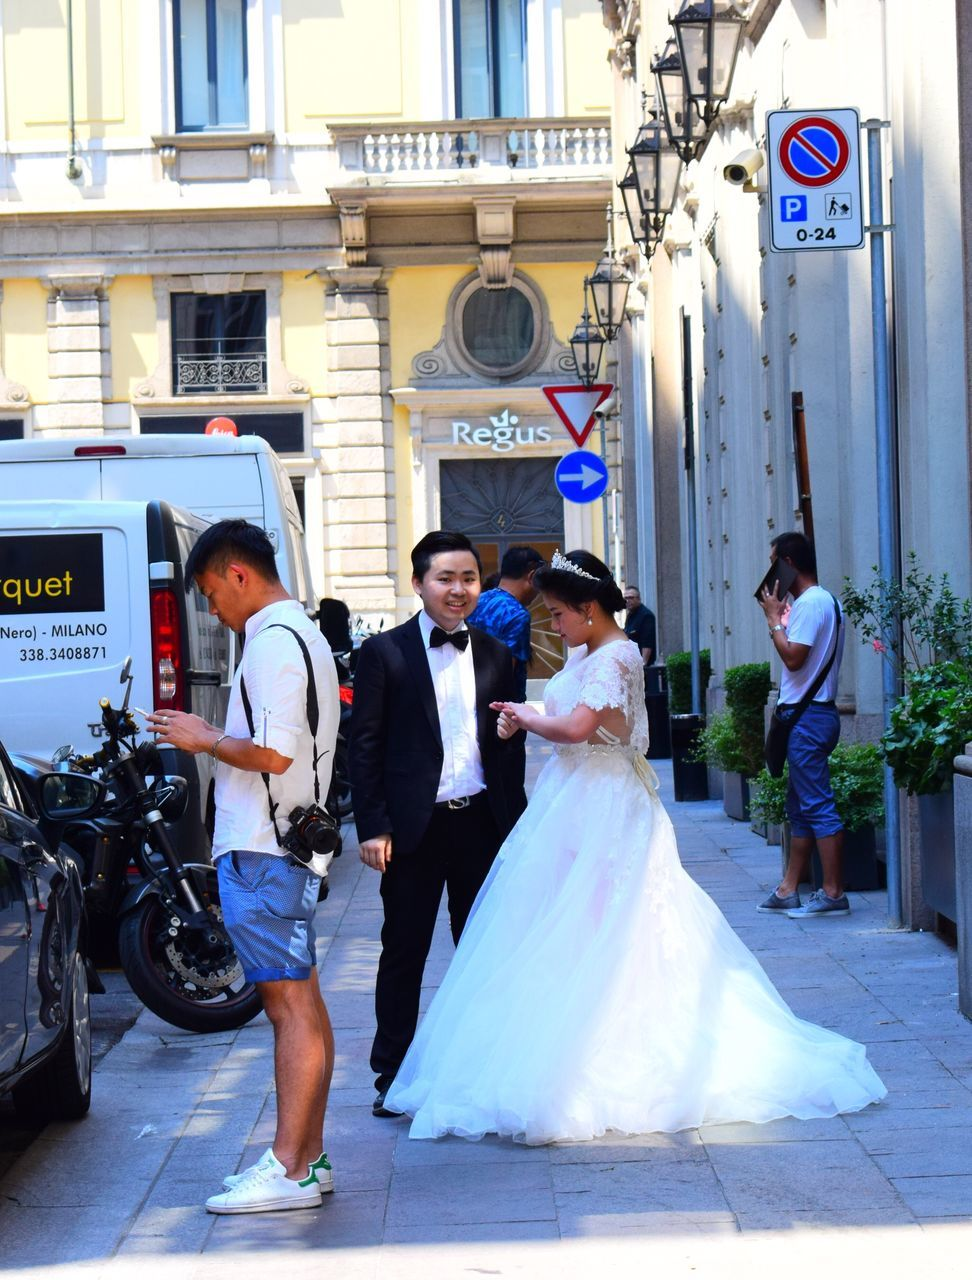 full length, real people, men, bride, wedding, walking, women, architecture, built structure, wedding dress, standing, day, togetherness, bridegroom, young women, well-dressed, young adult, building exterior, outdoors, groom, adult